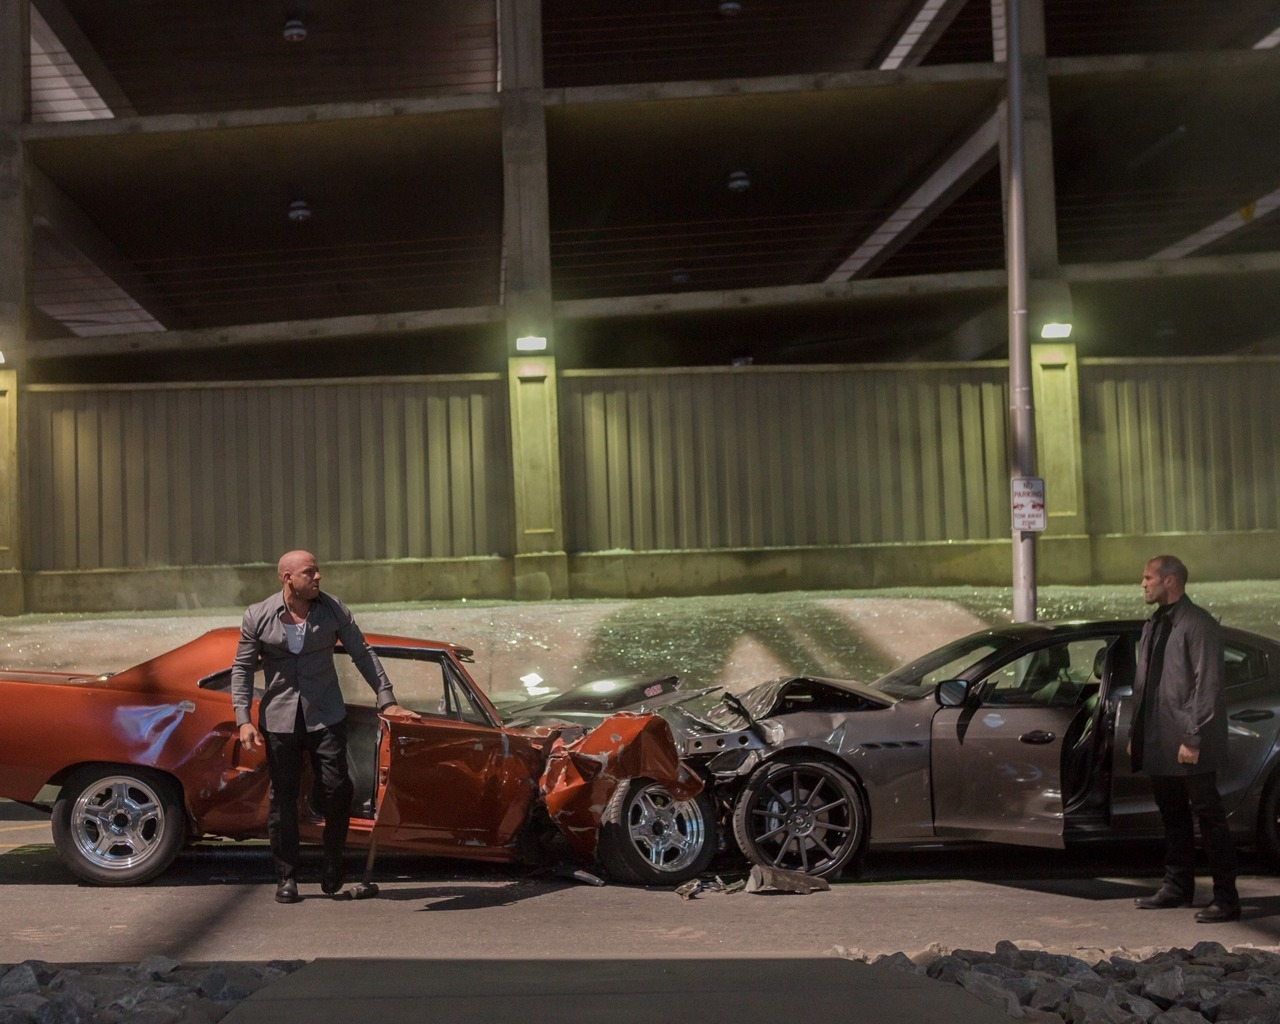 Fast And Furious 7 Movie Scene for 1280 x 1024 resolution